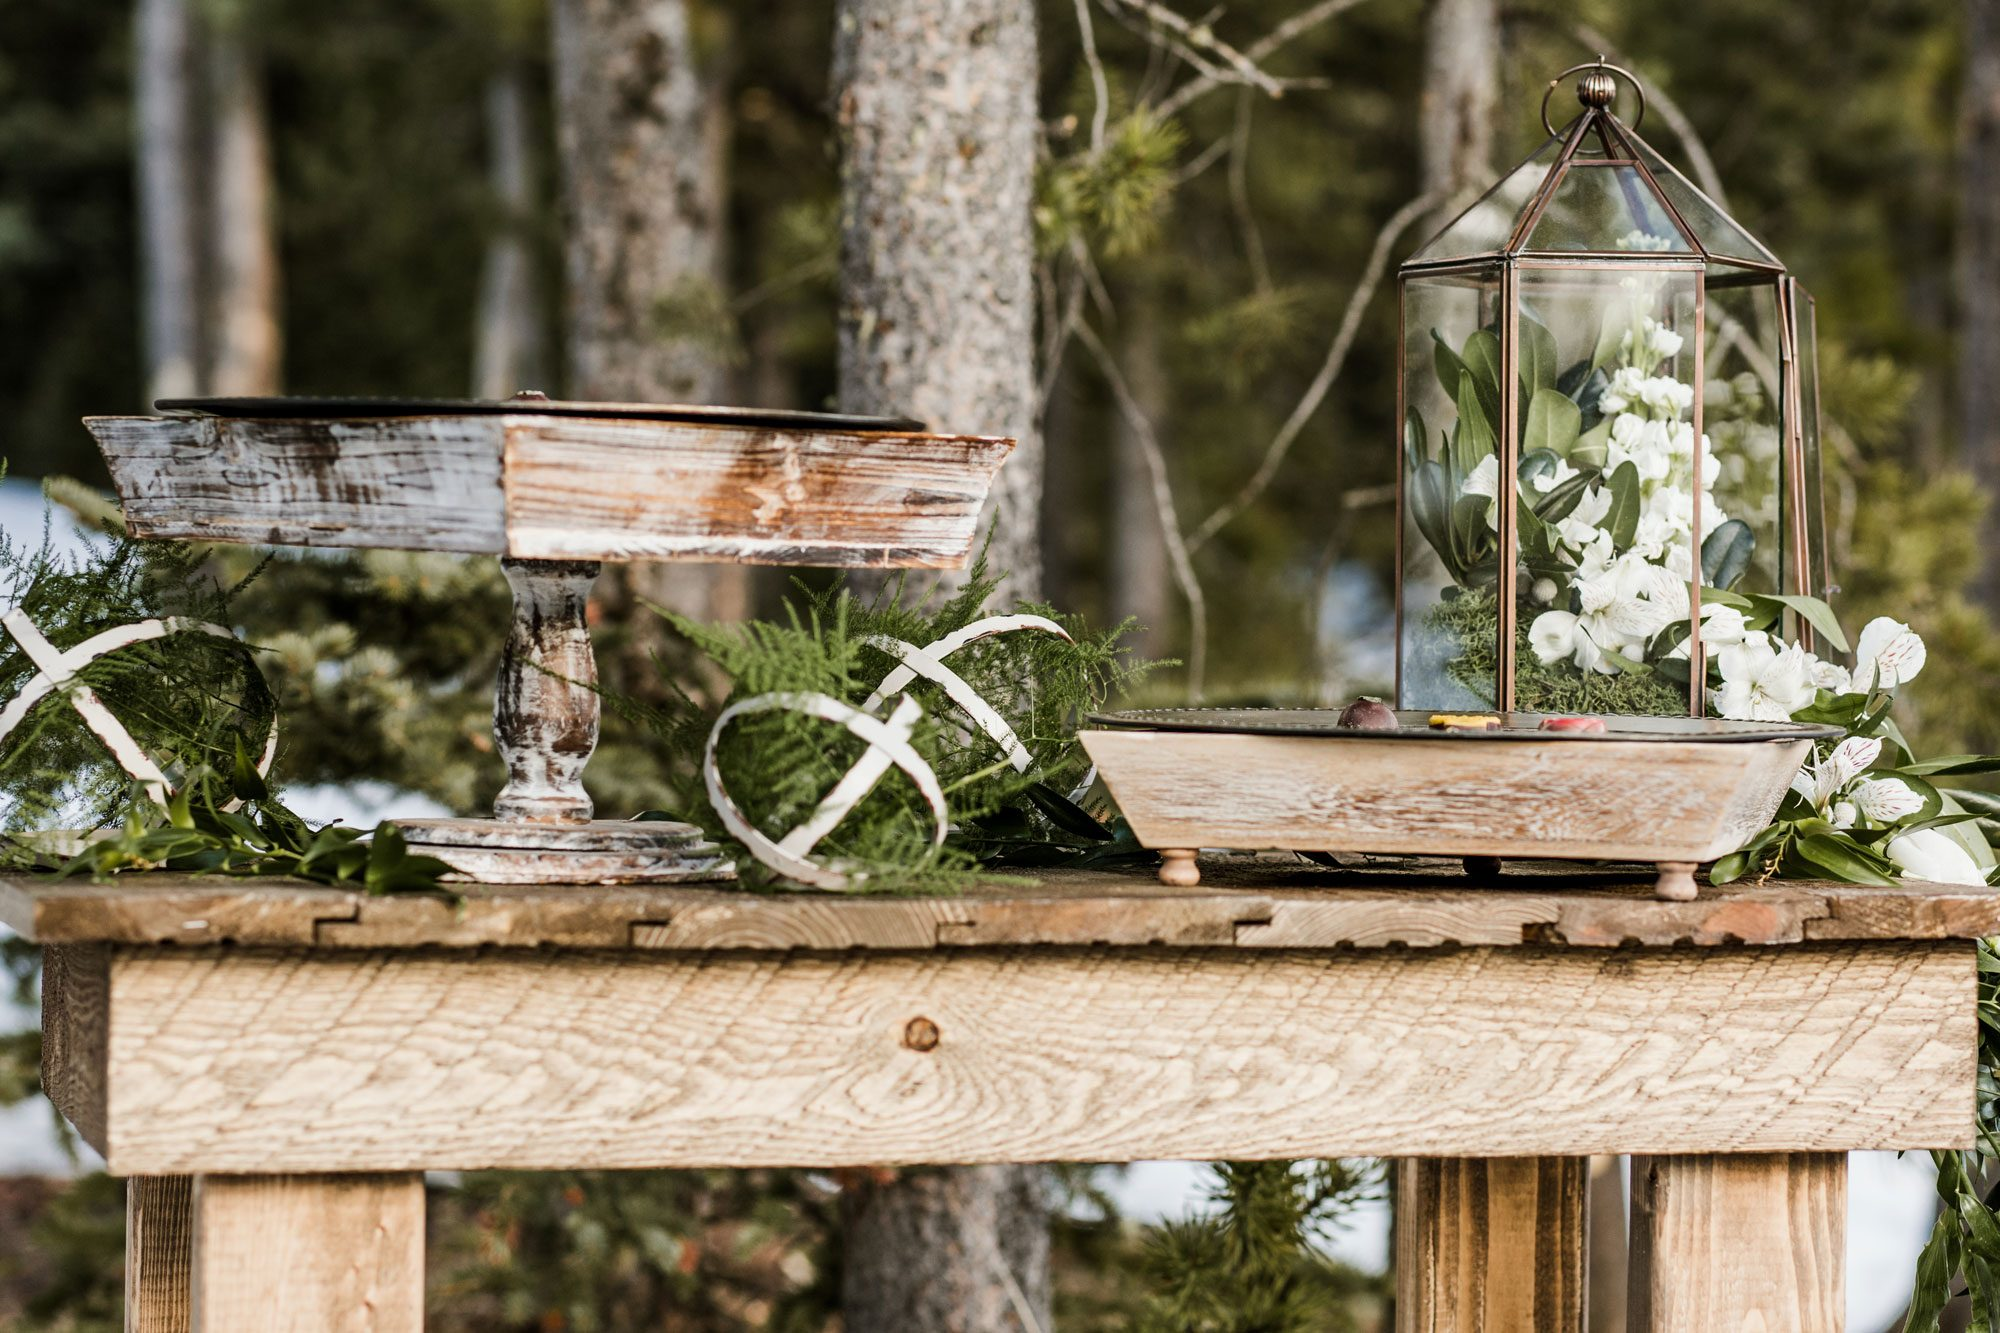 A winter tablescape with wood, metal, white florals & greenery accents